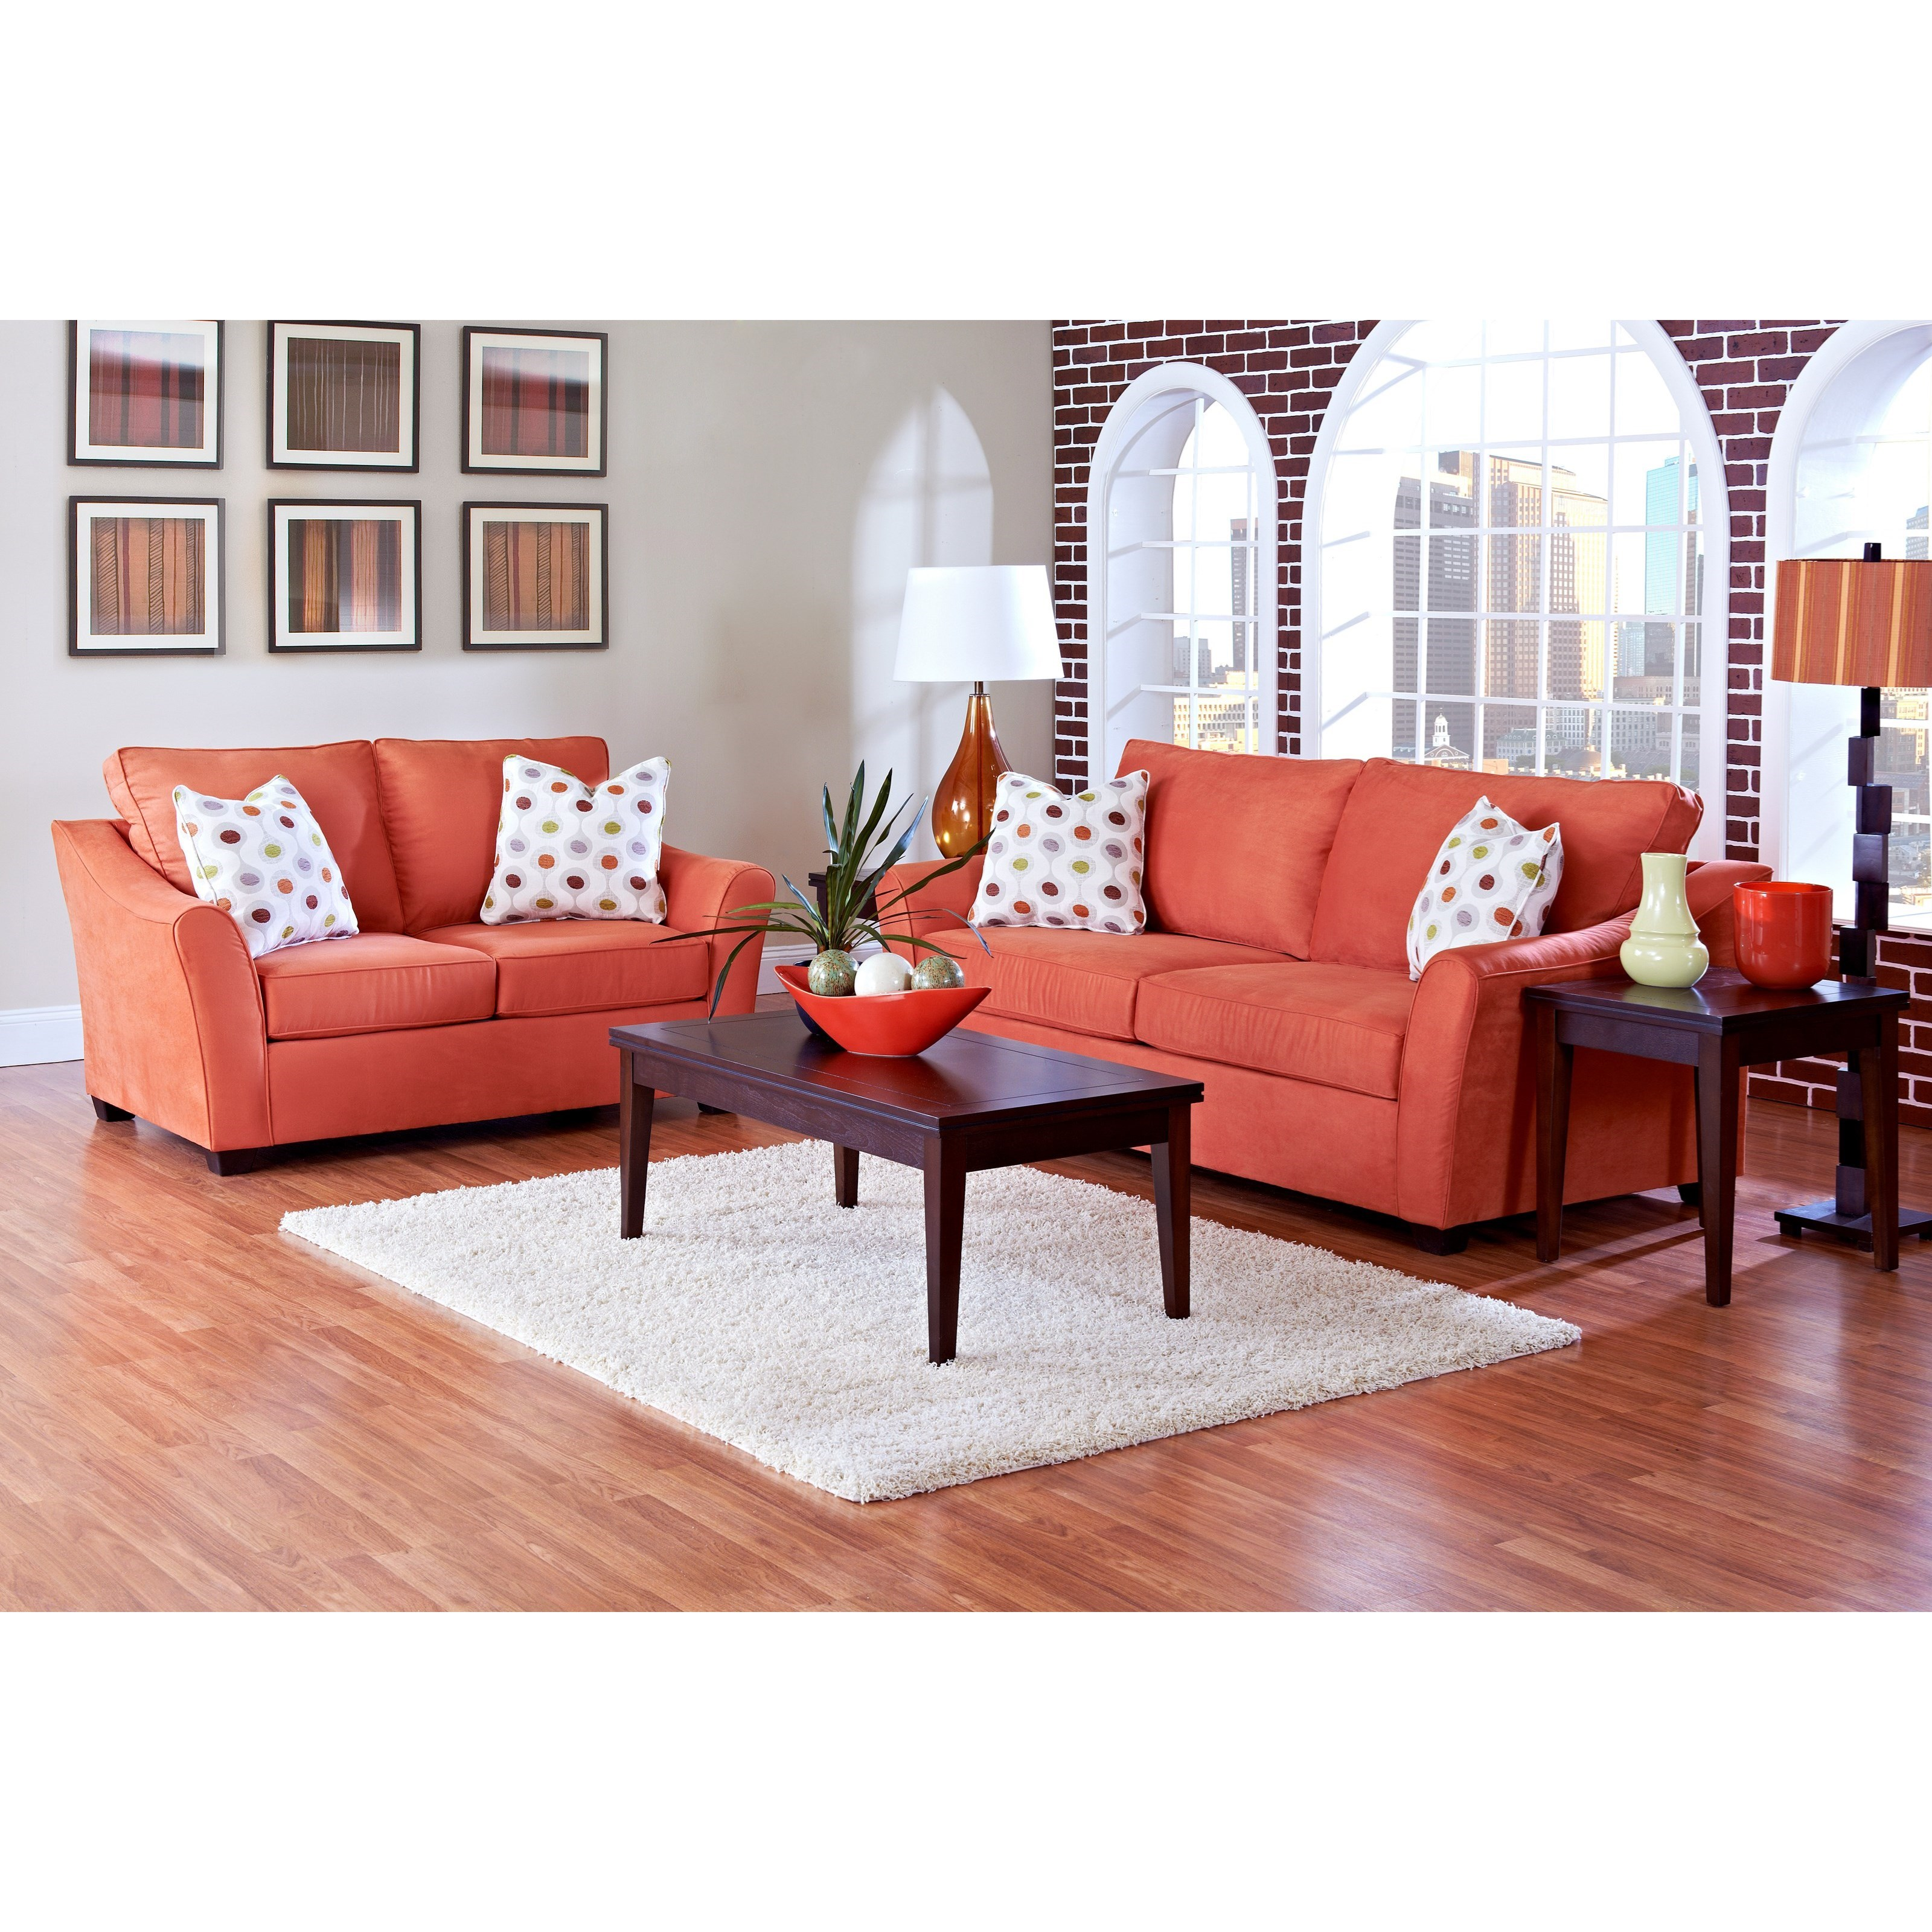 Linville Living Room Group by Klaussner at Northeast Factory Direct